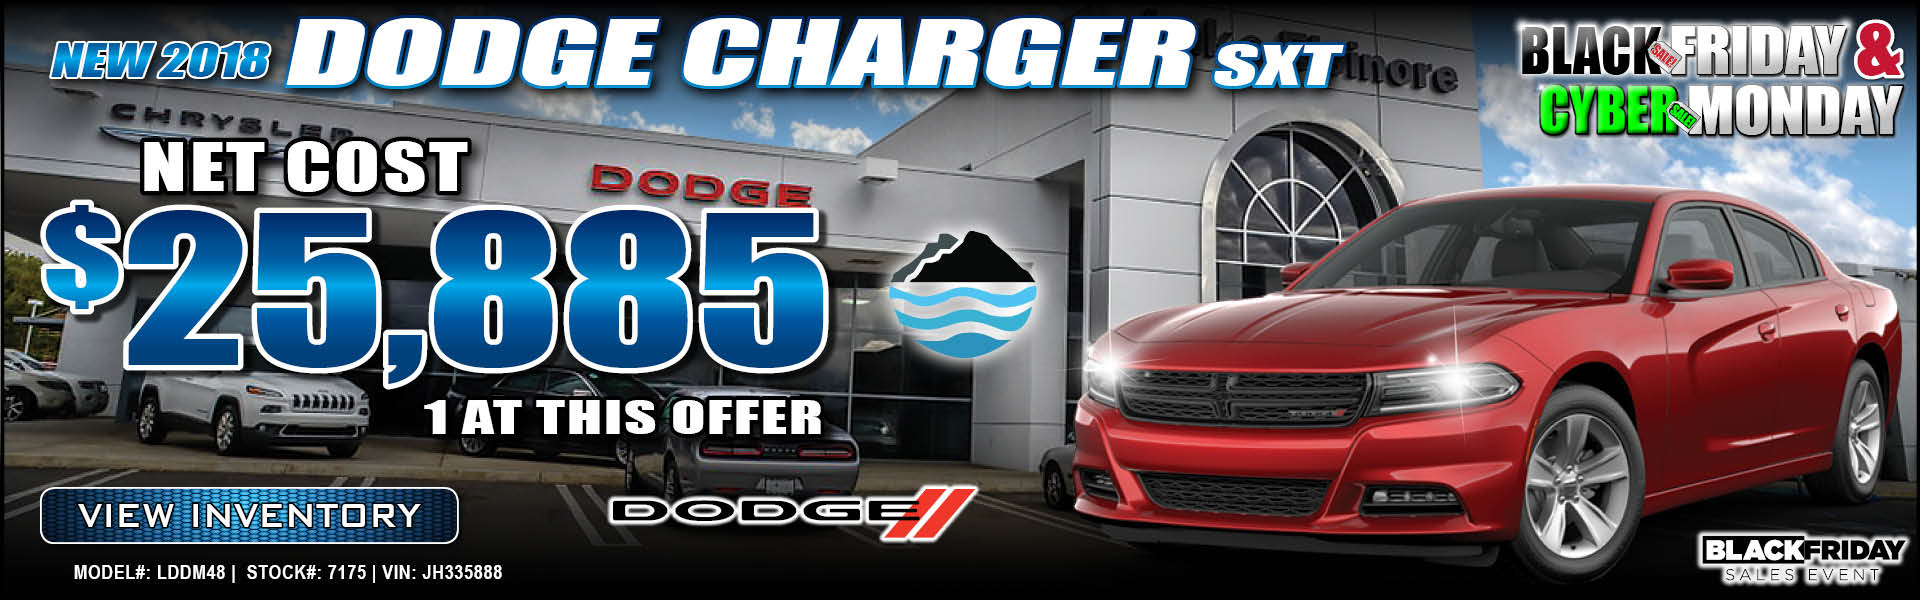 Dodge Charger $25,885